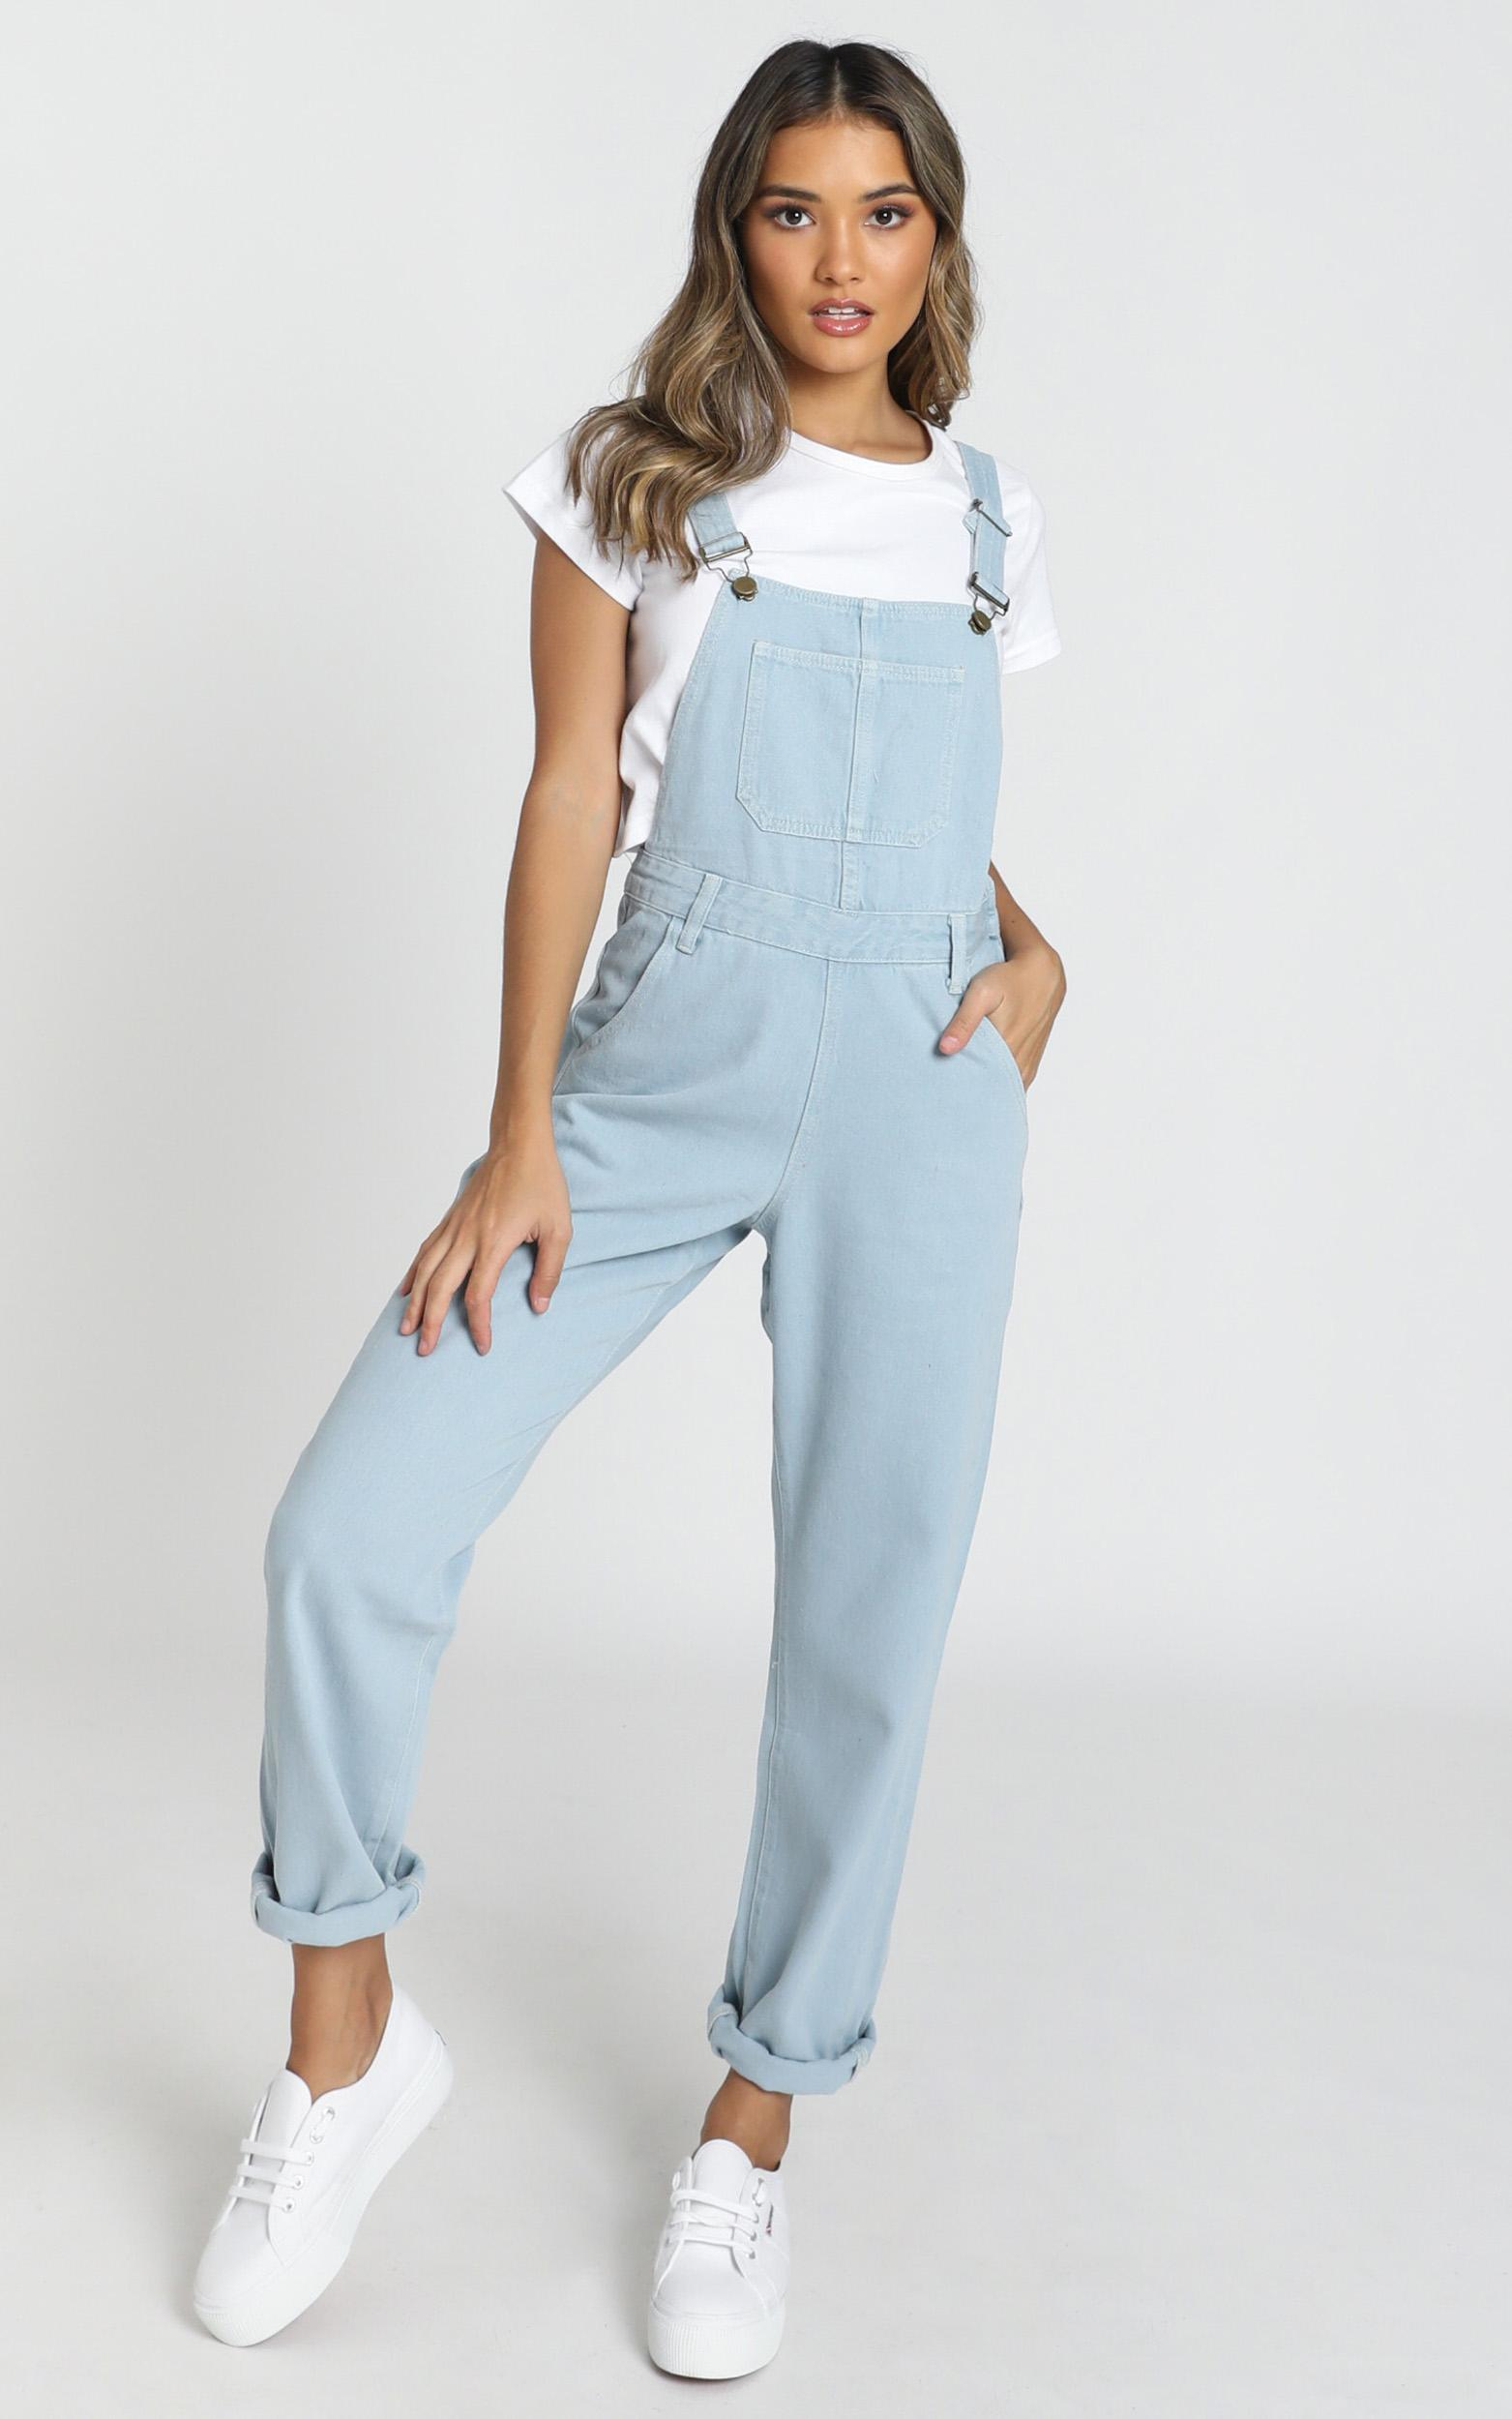 Kiera Denim Overalls in blue wash - 20 (XXXXL), Blue, hi-res image number null